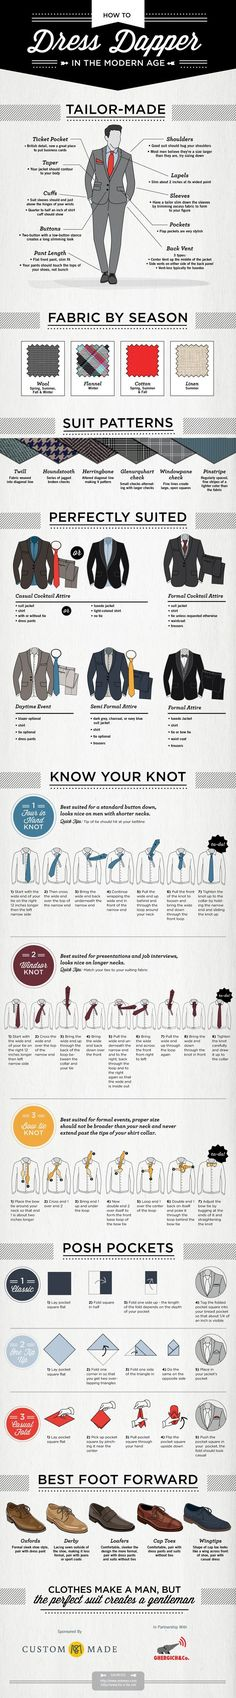 How to Dress Dapper in the Modern Age - Guys here is another fabulous and comprehensive men's fashion guide on how to dress dapper in the…